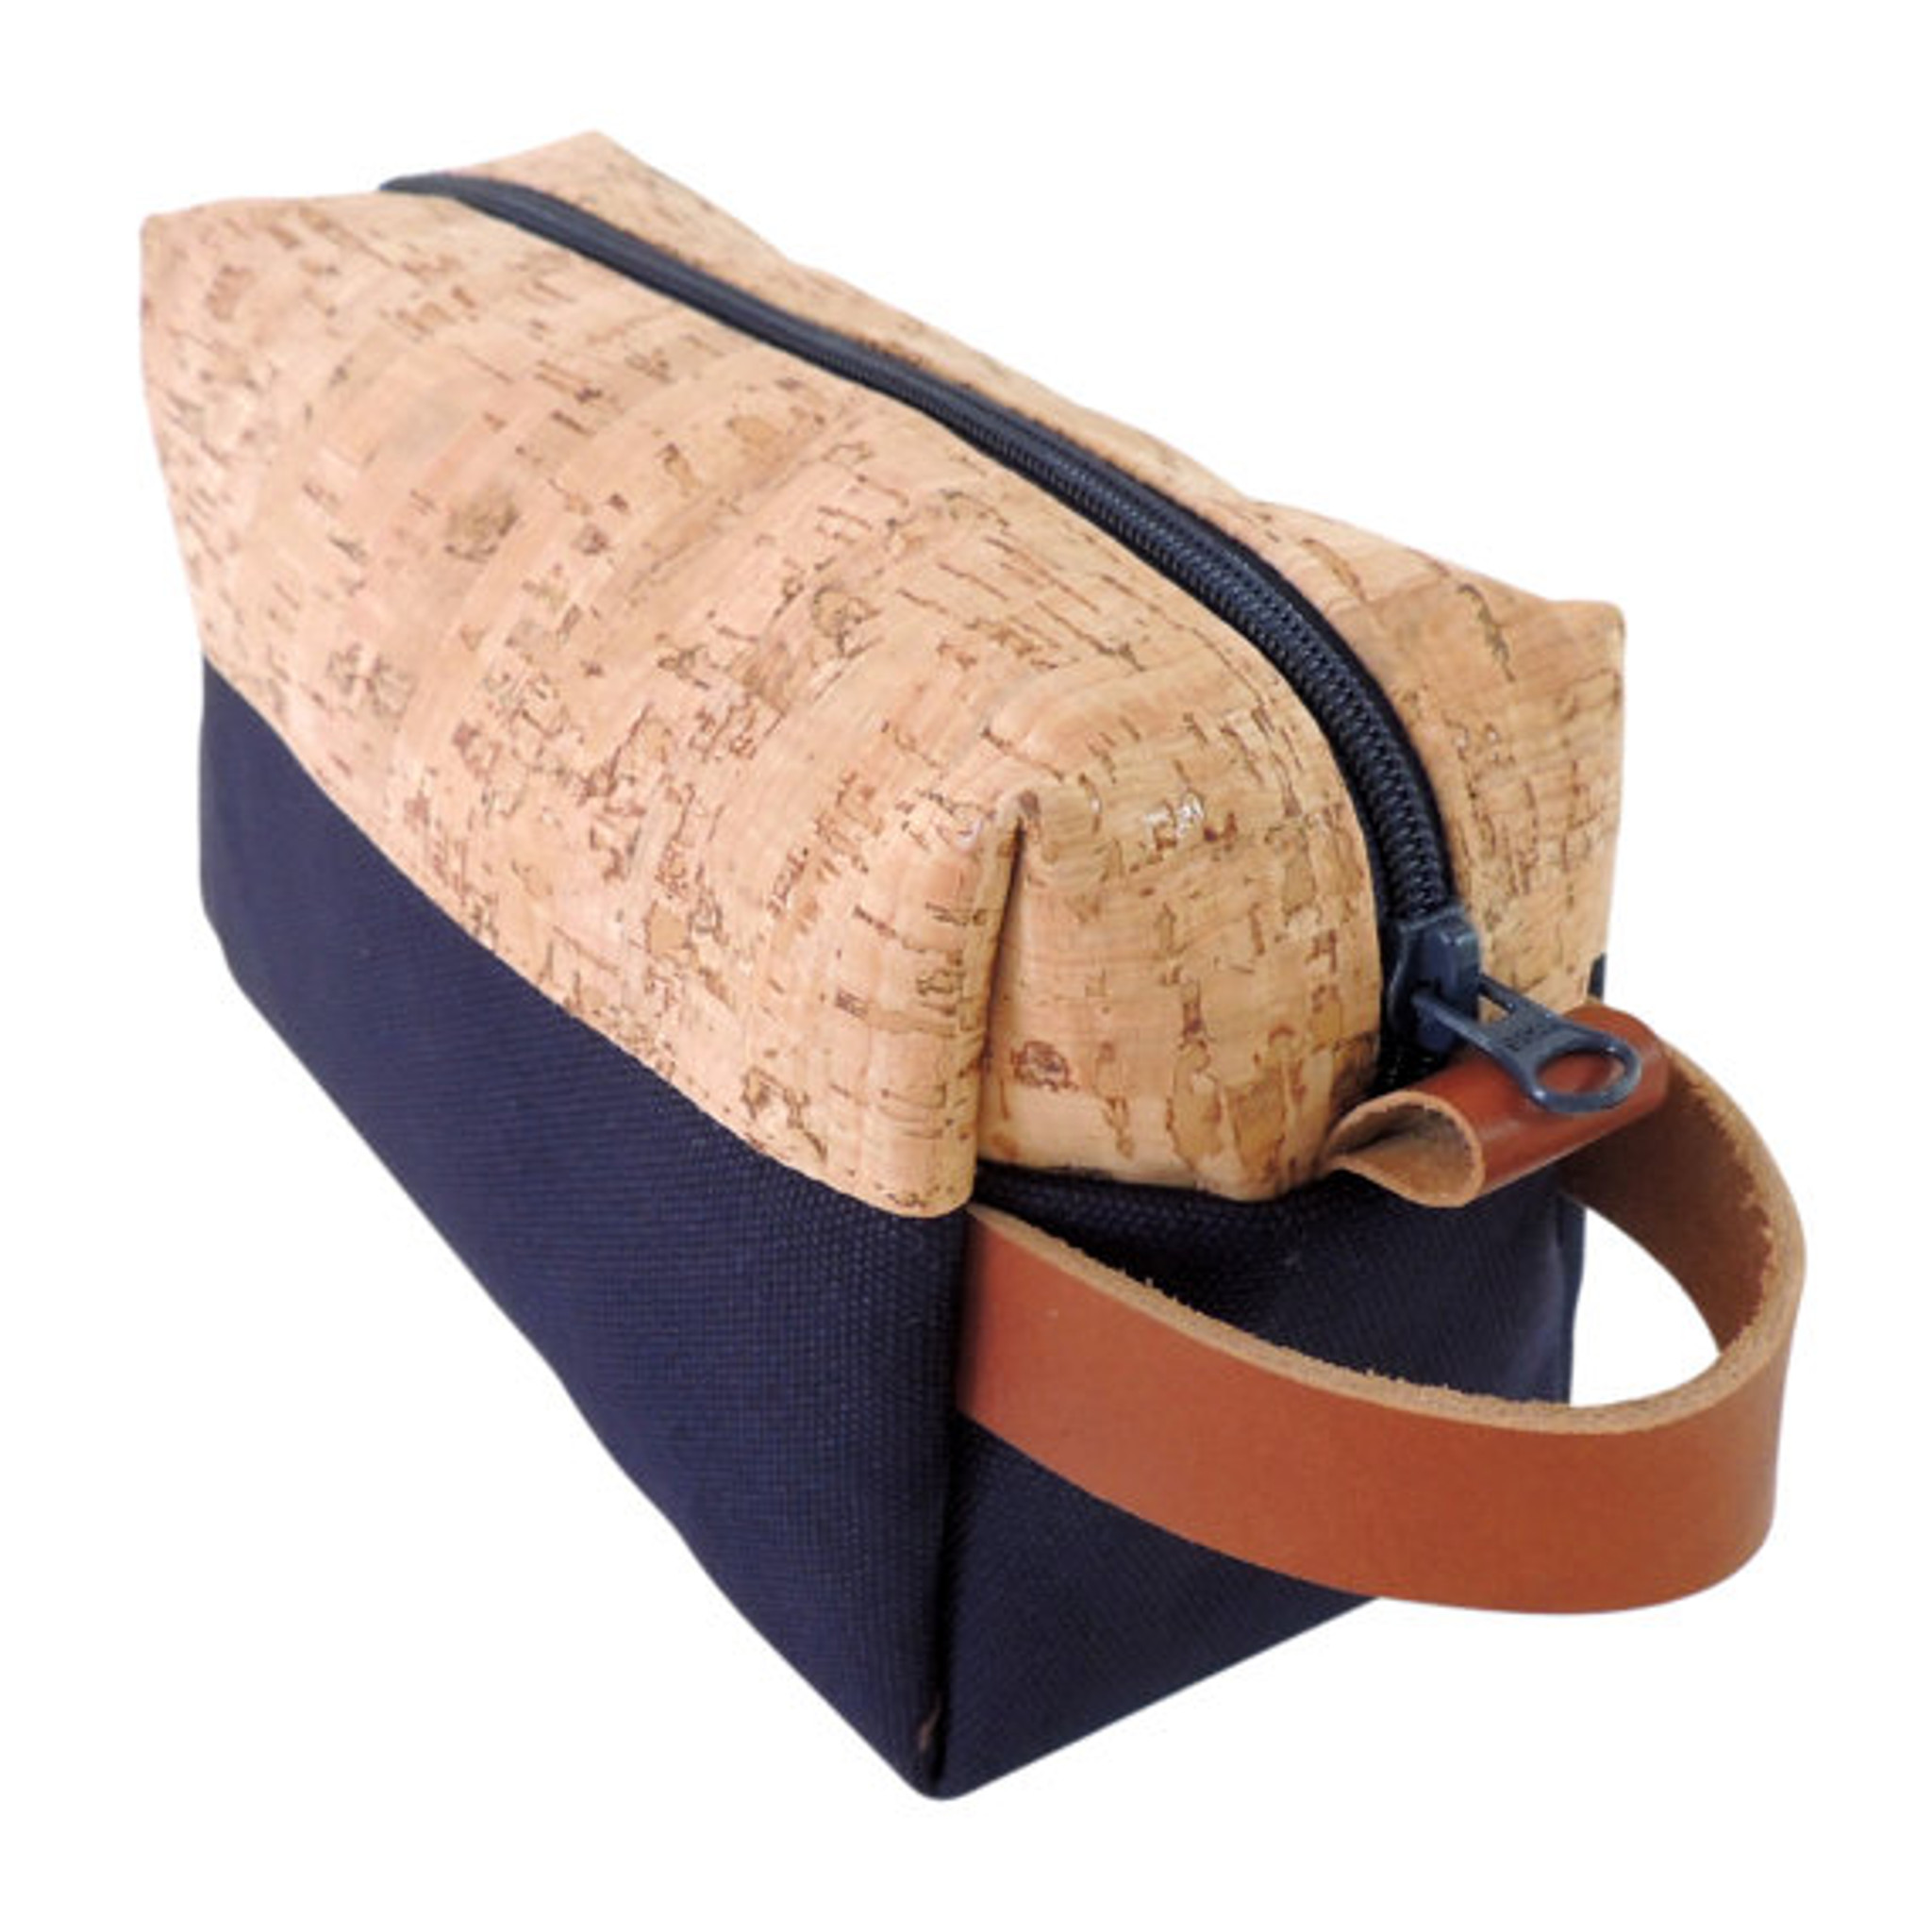 Dopp Kit in Cork Dash and Navy